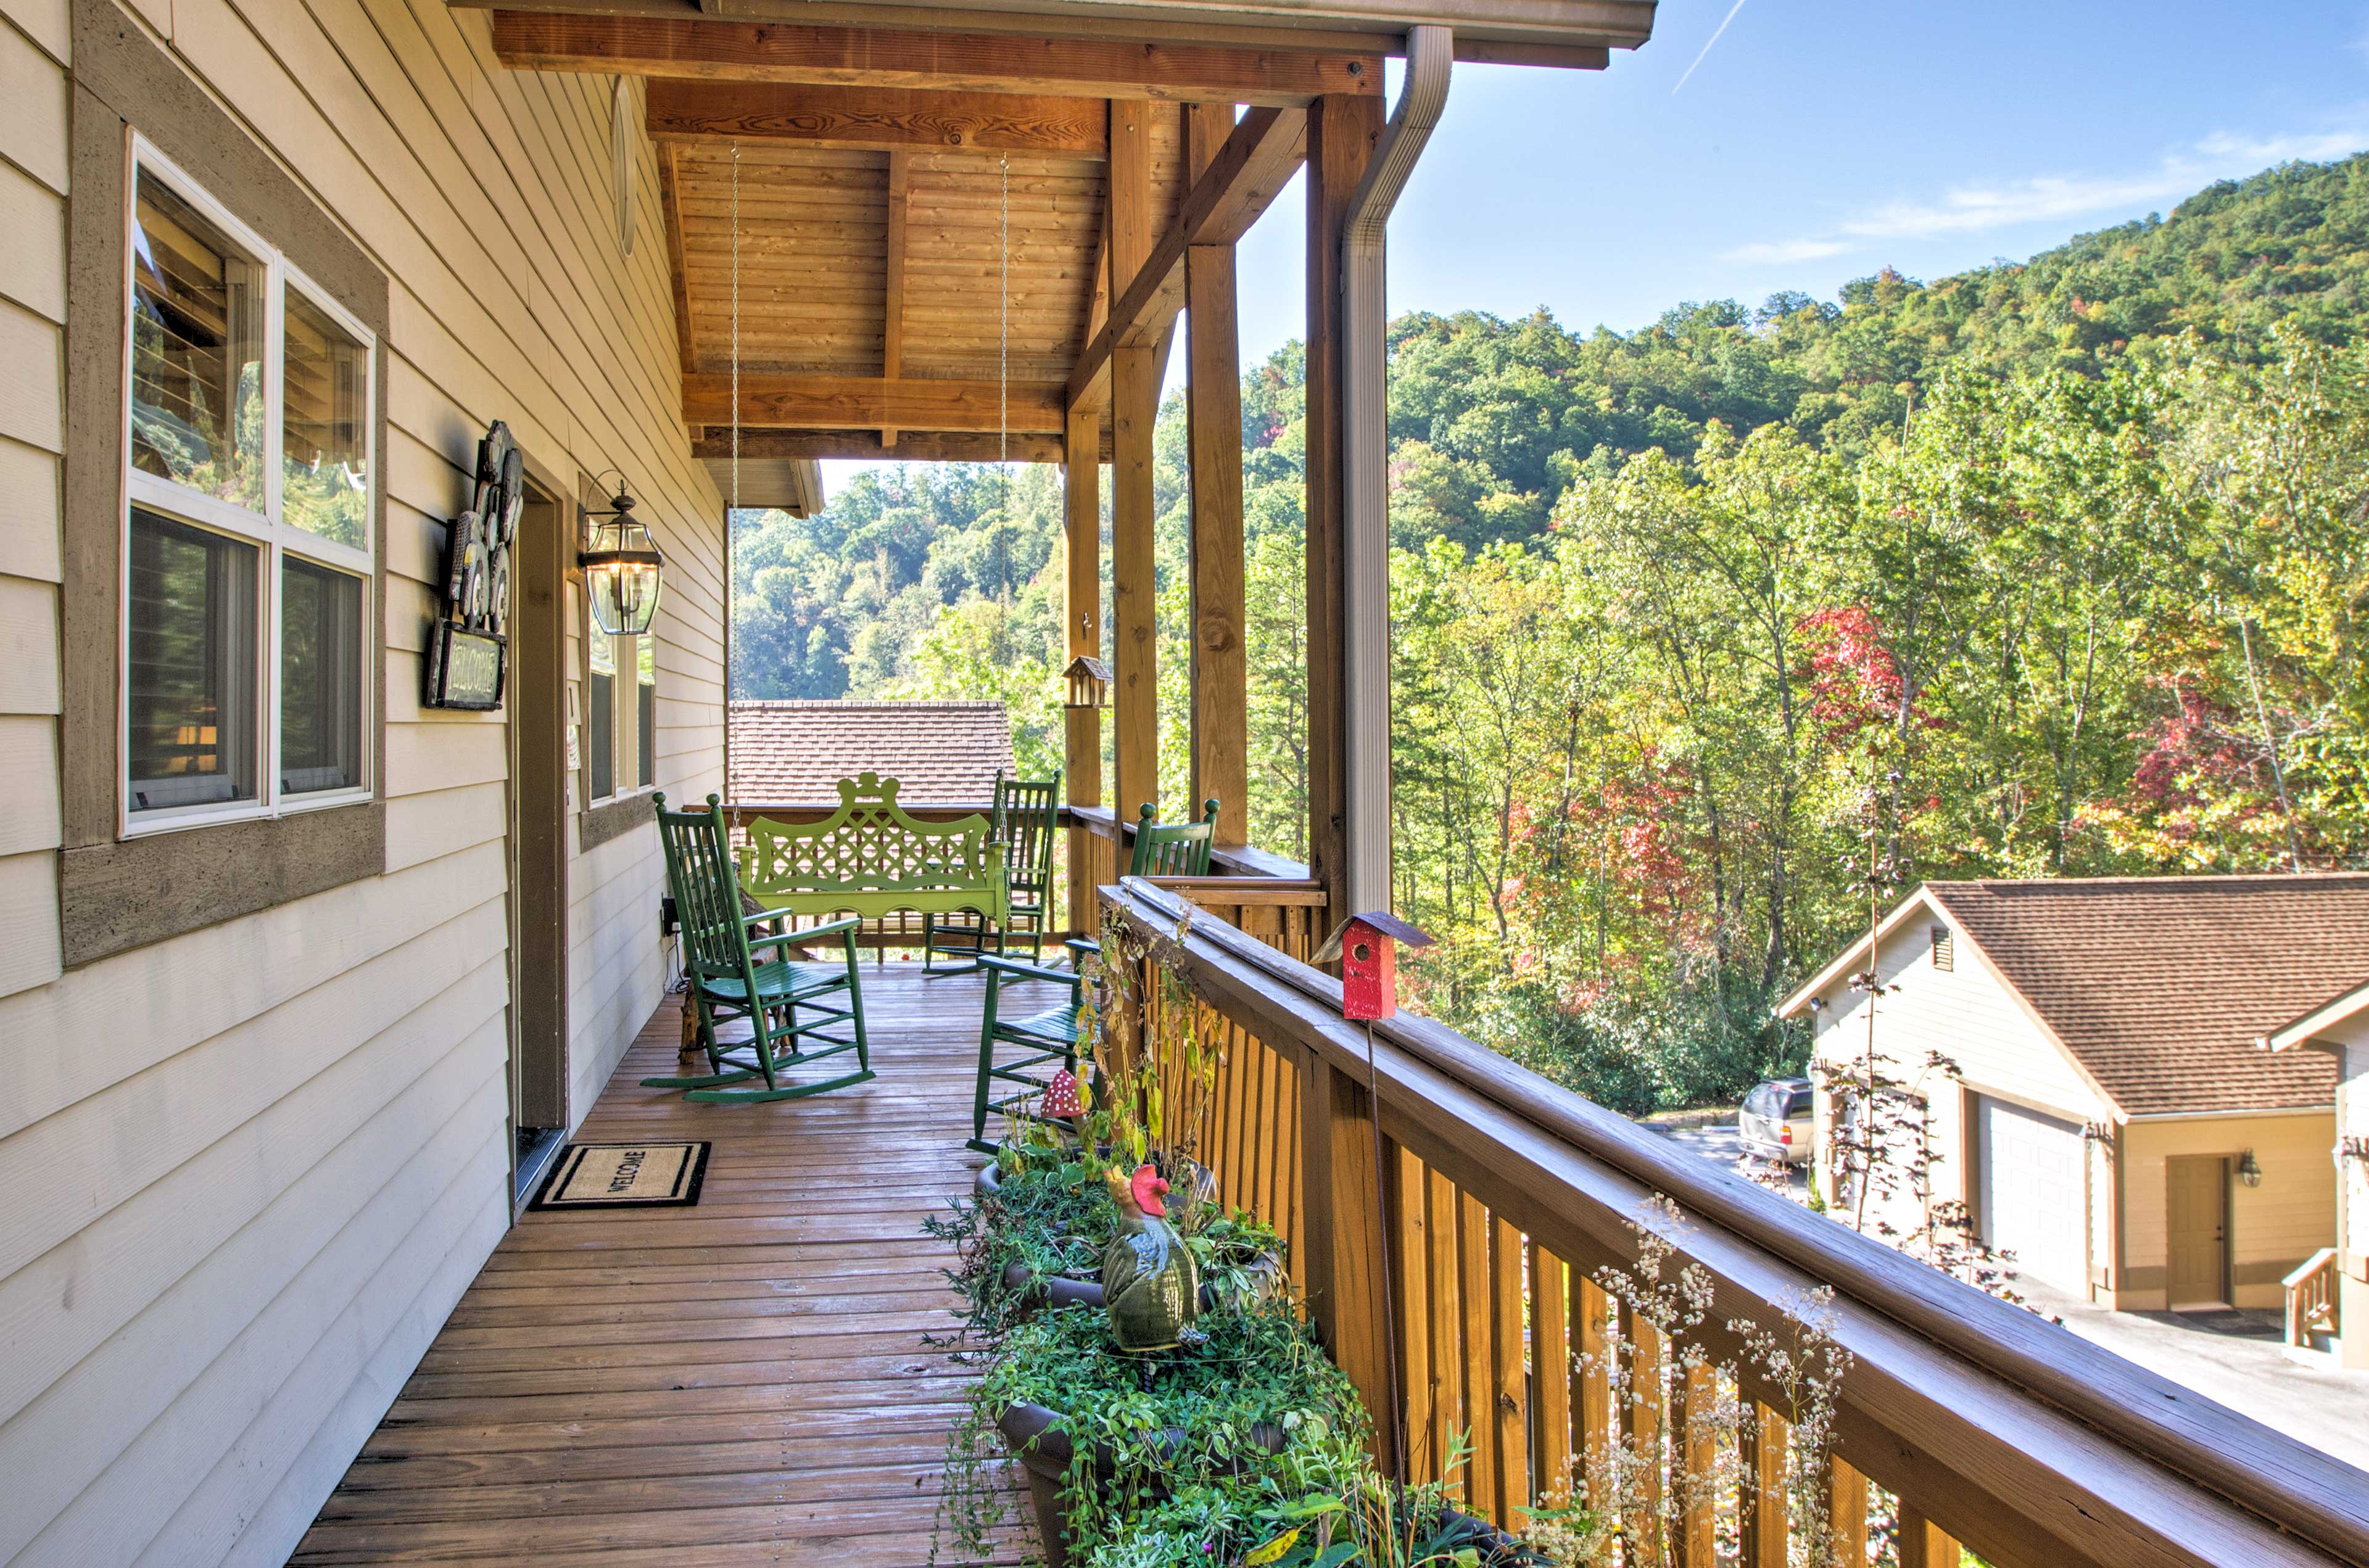 Sip your morning coffee on the balcony.